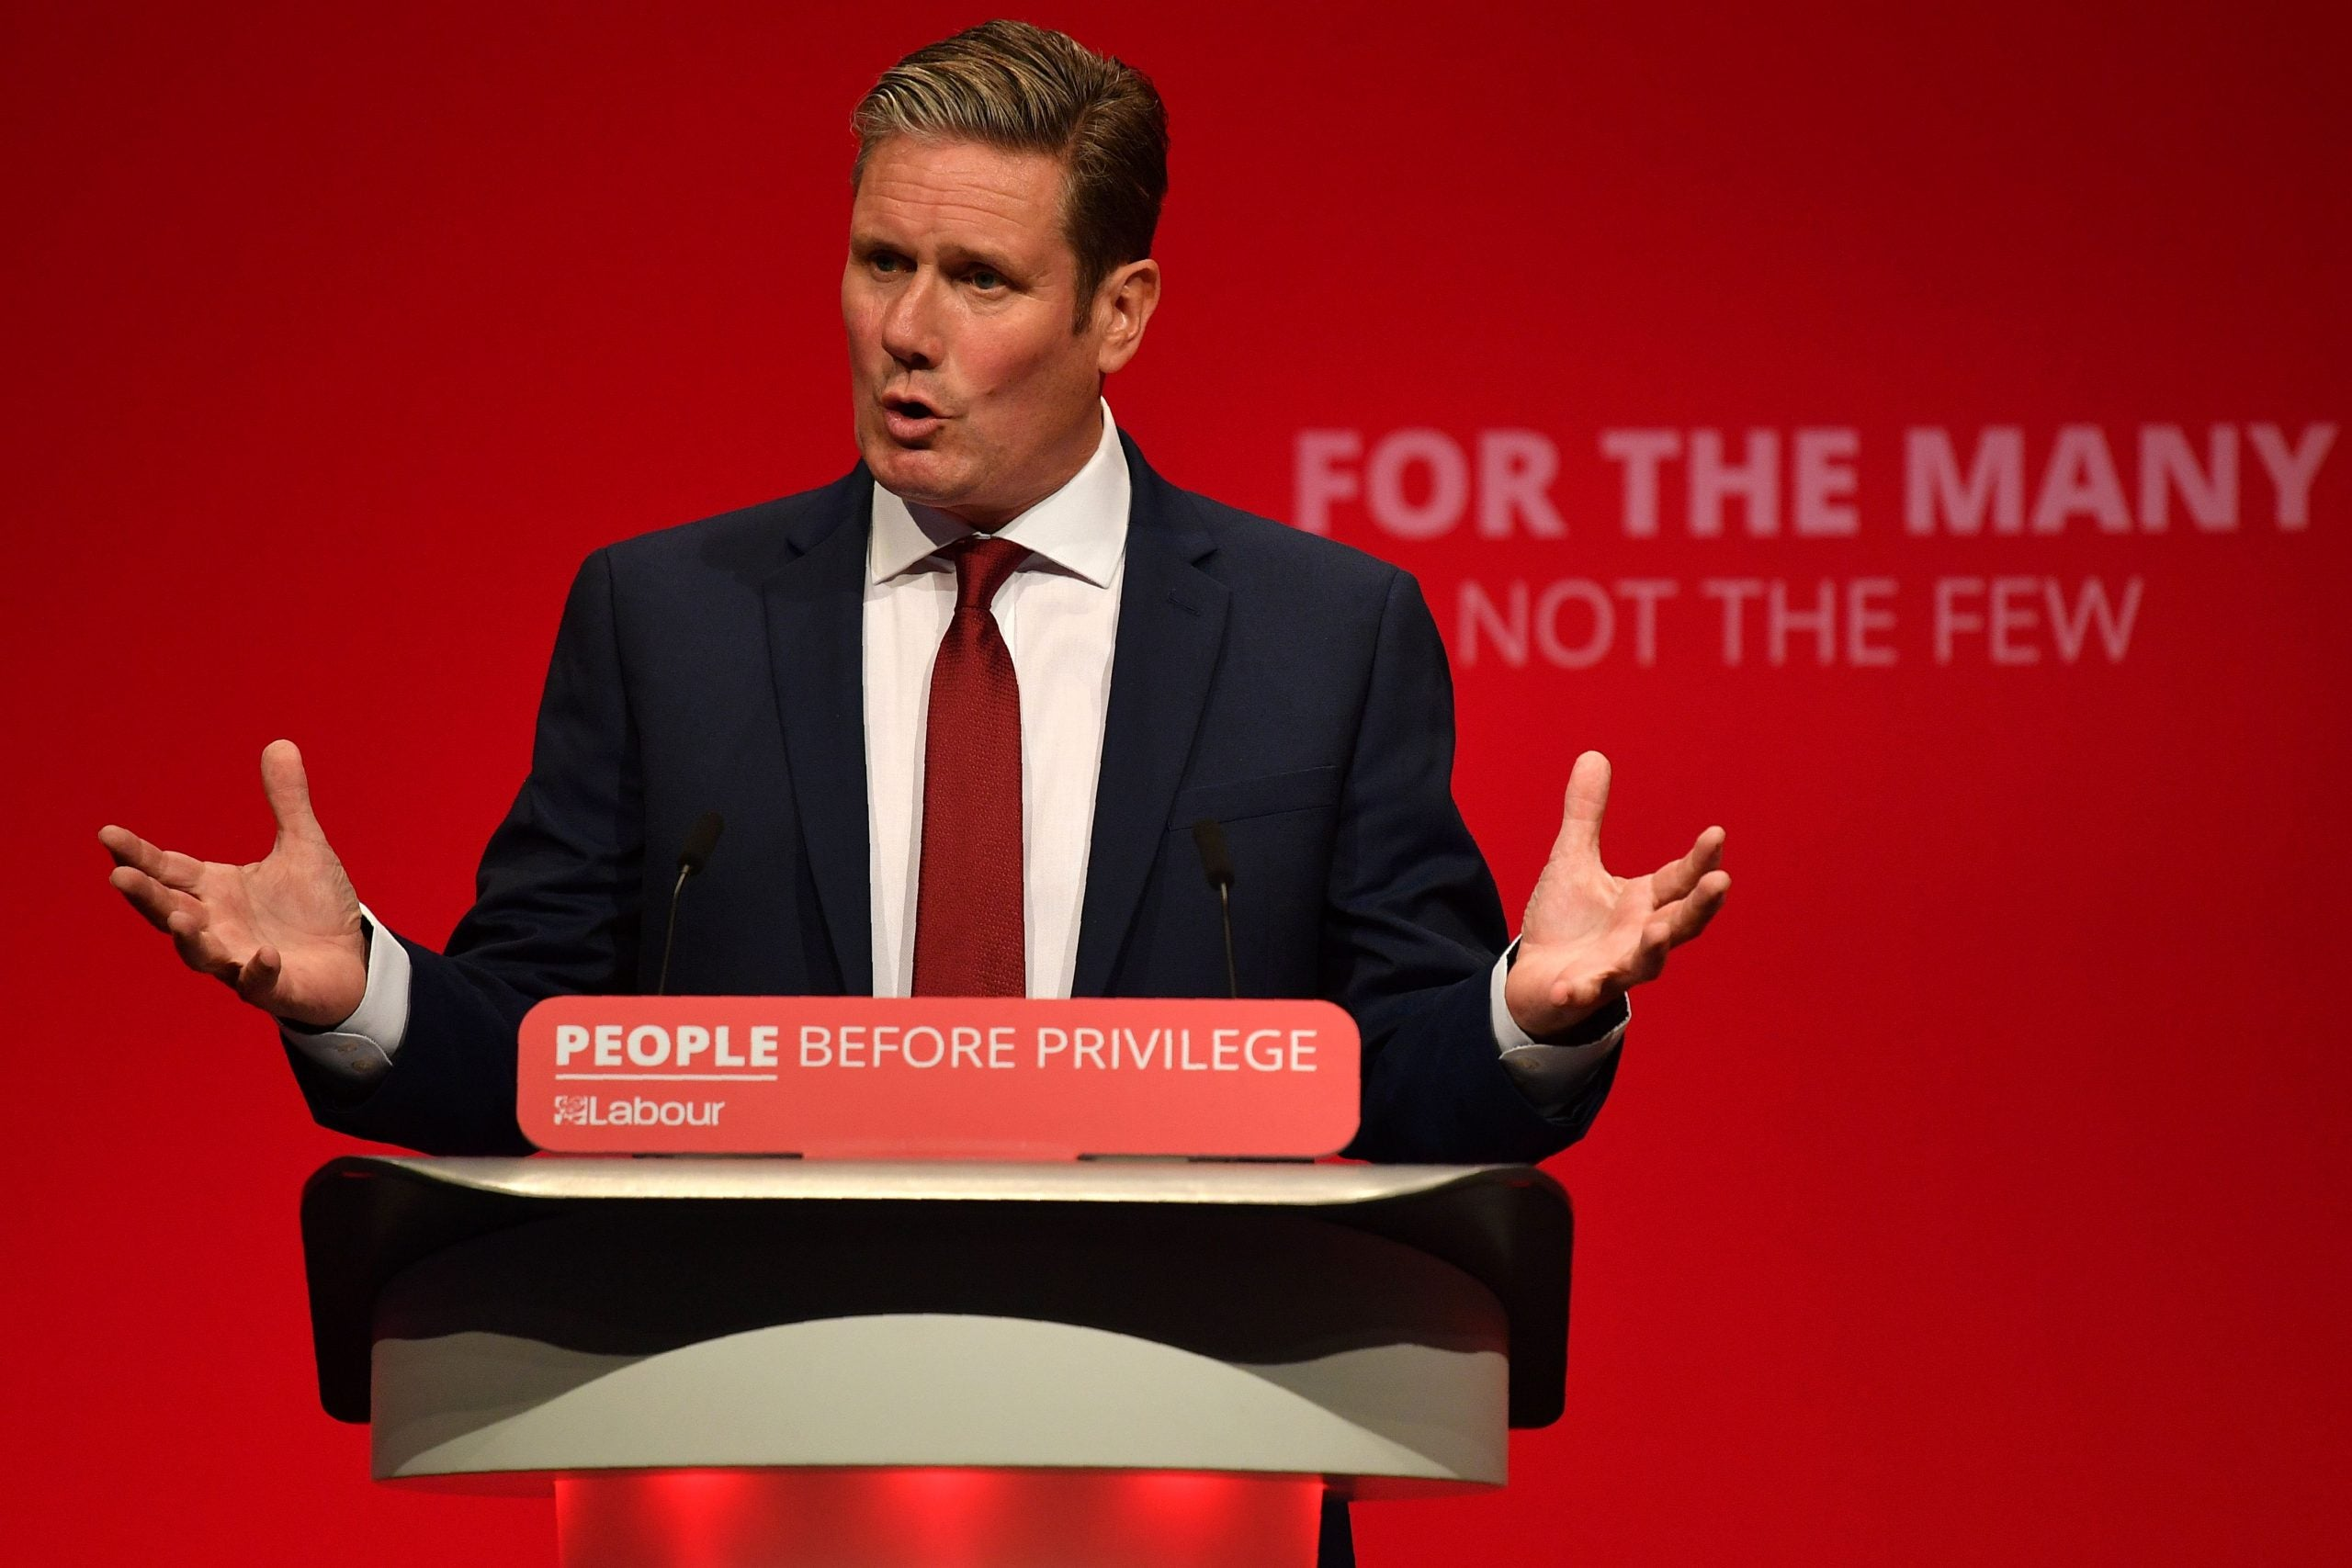 Keir Starmer turns left and makes his leadership pitch